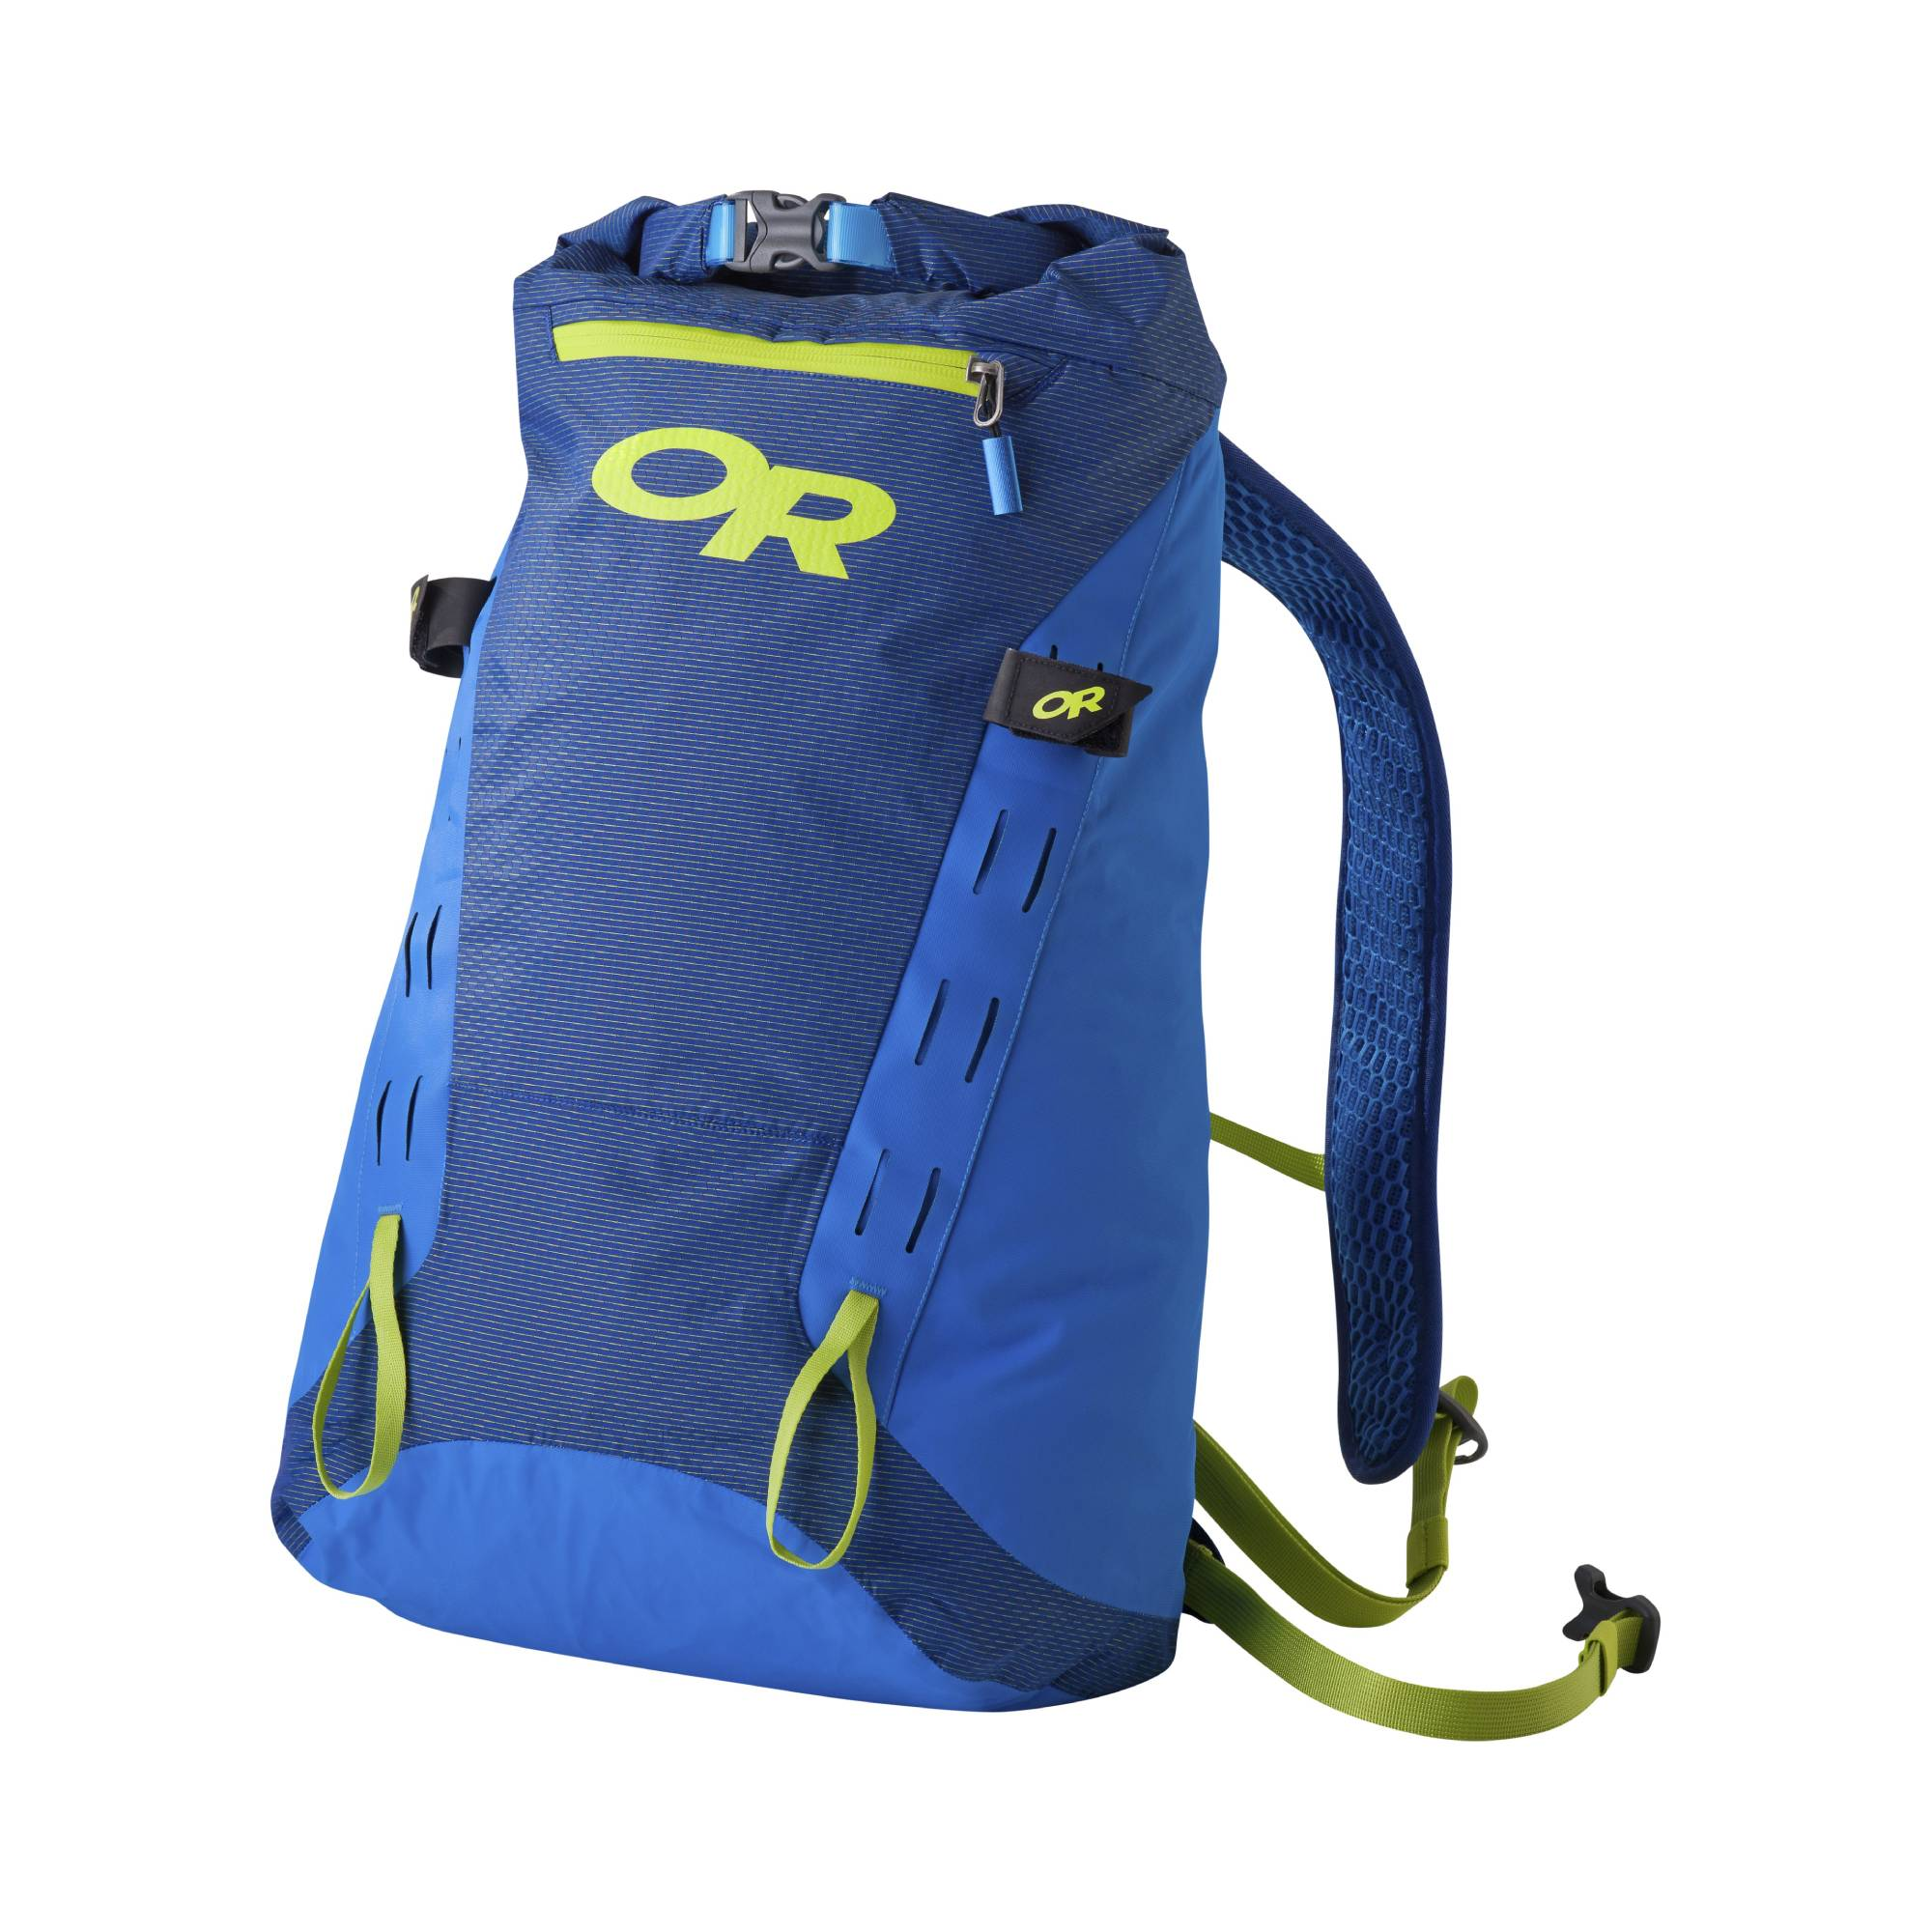 Dry Summit Pack LT